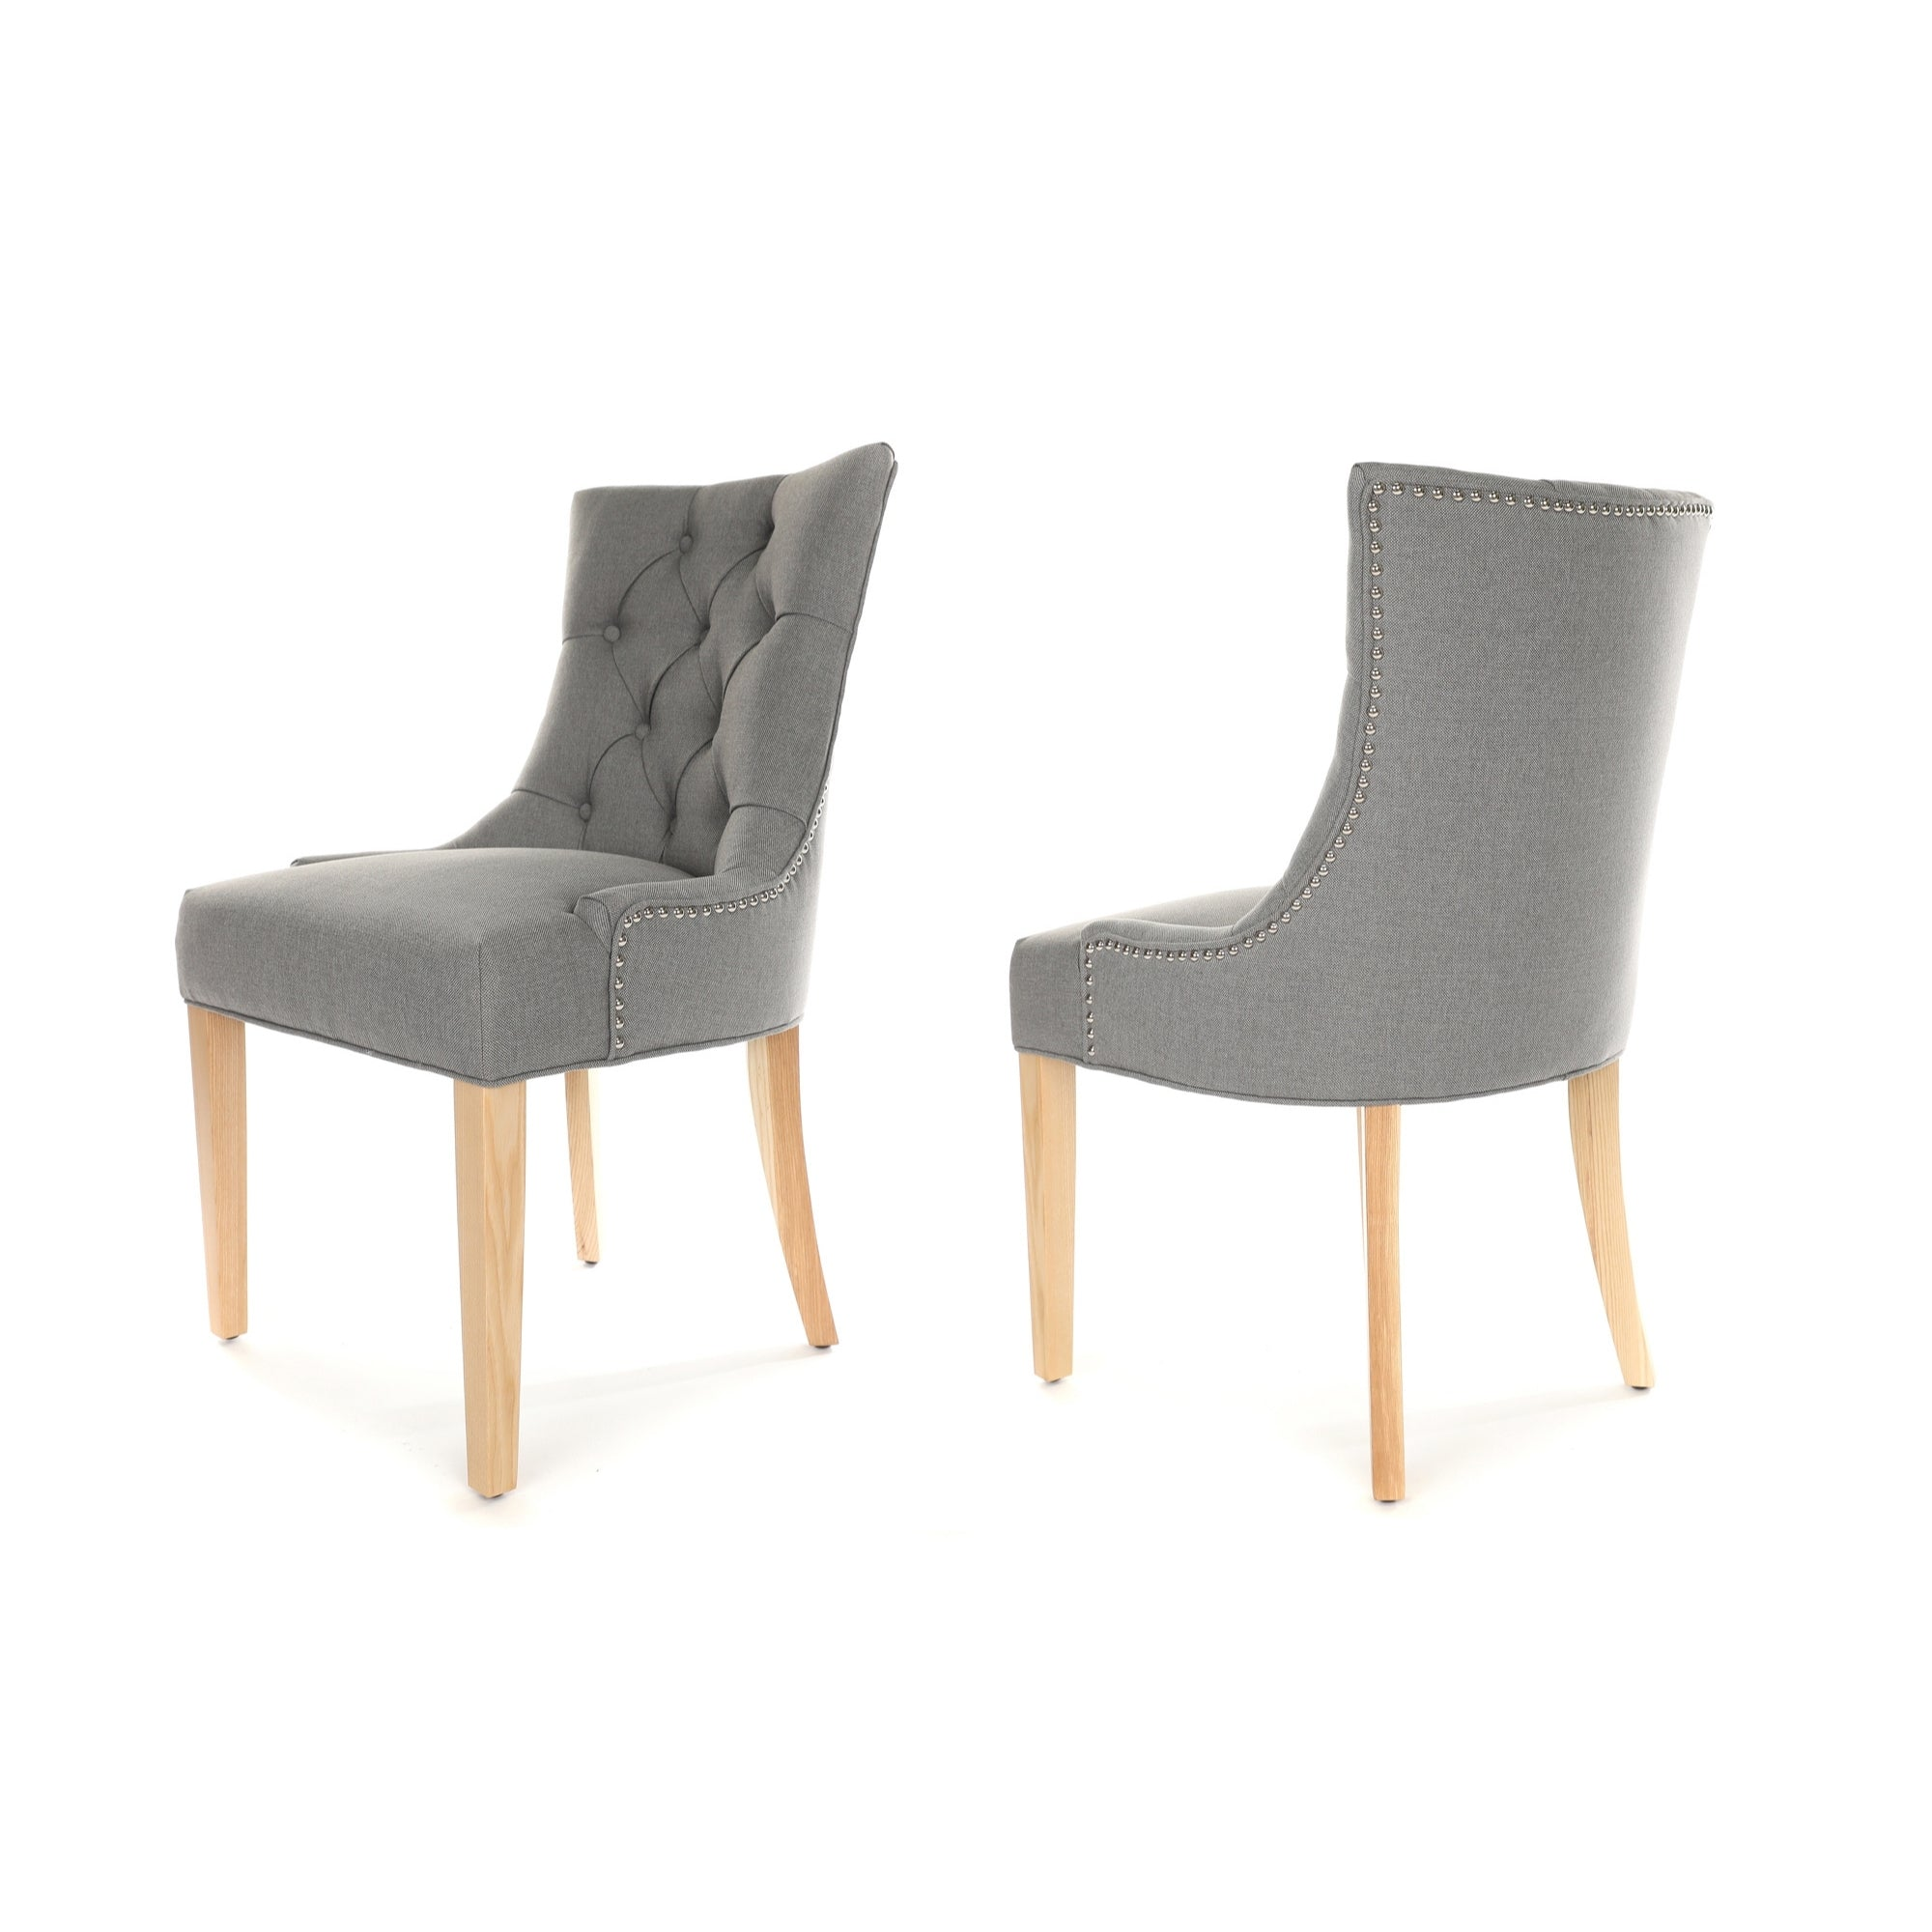 Porter Dining Chair, Grey fabric, Natural wood leg and stud detail